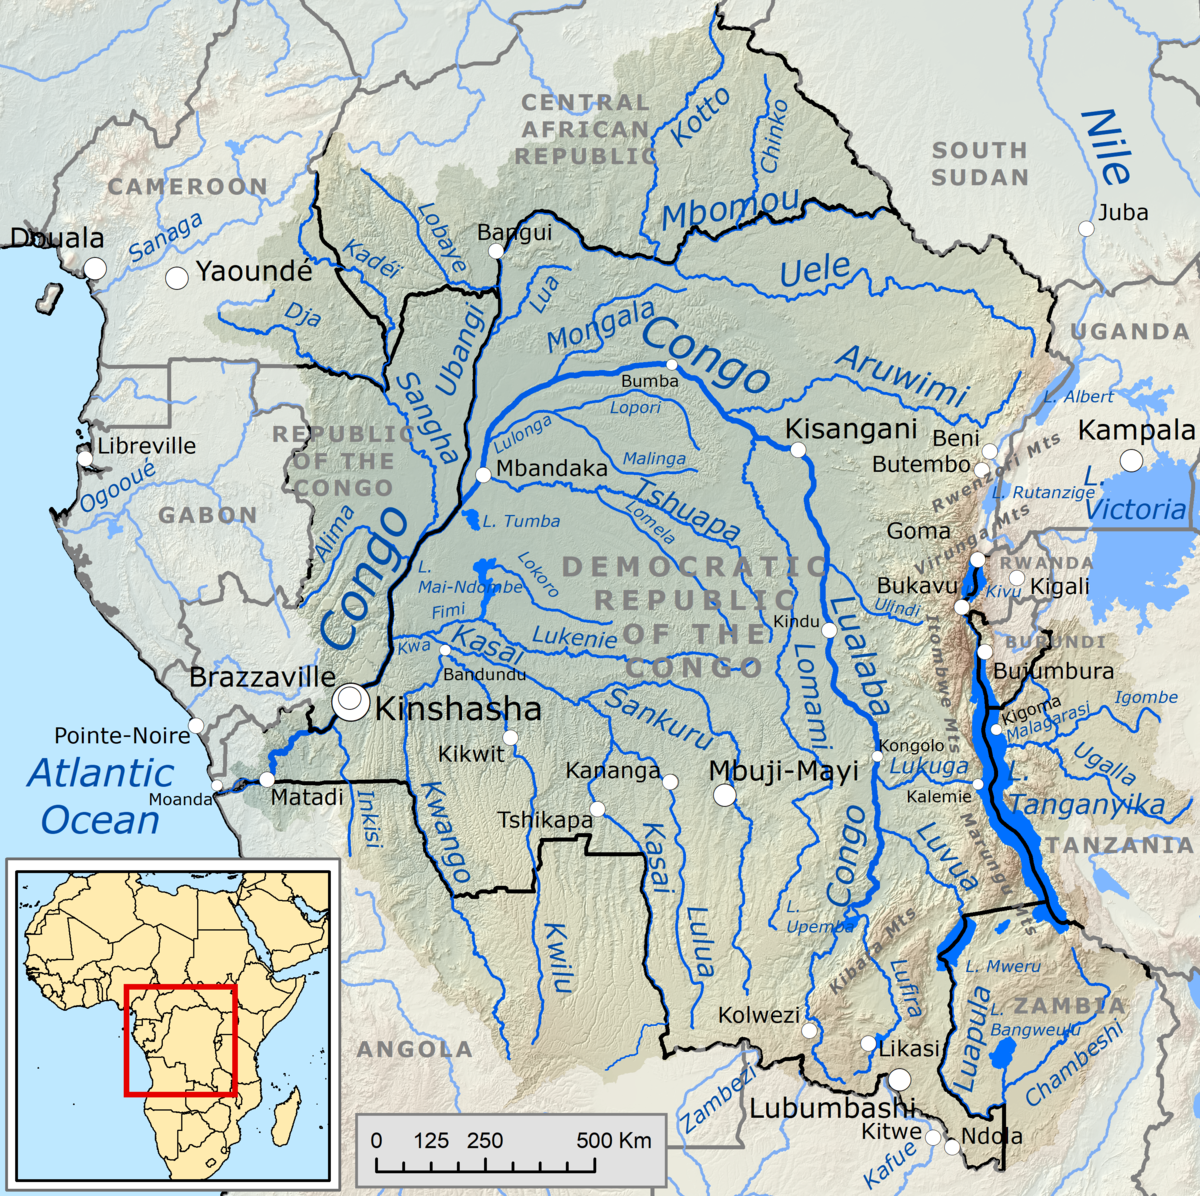 Congo Basin Ecoregions | Global Forest Atlas |Congo Basin